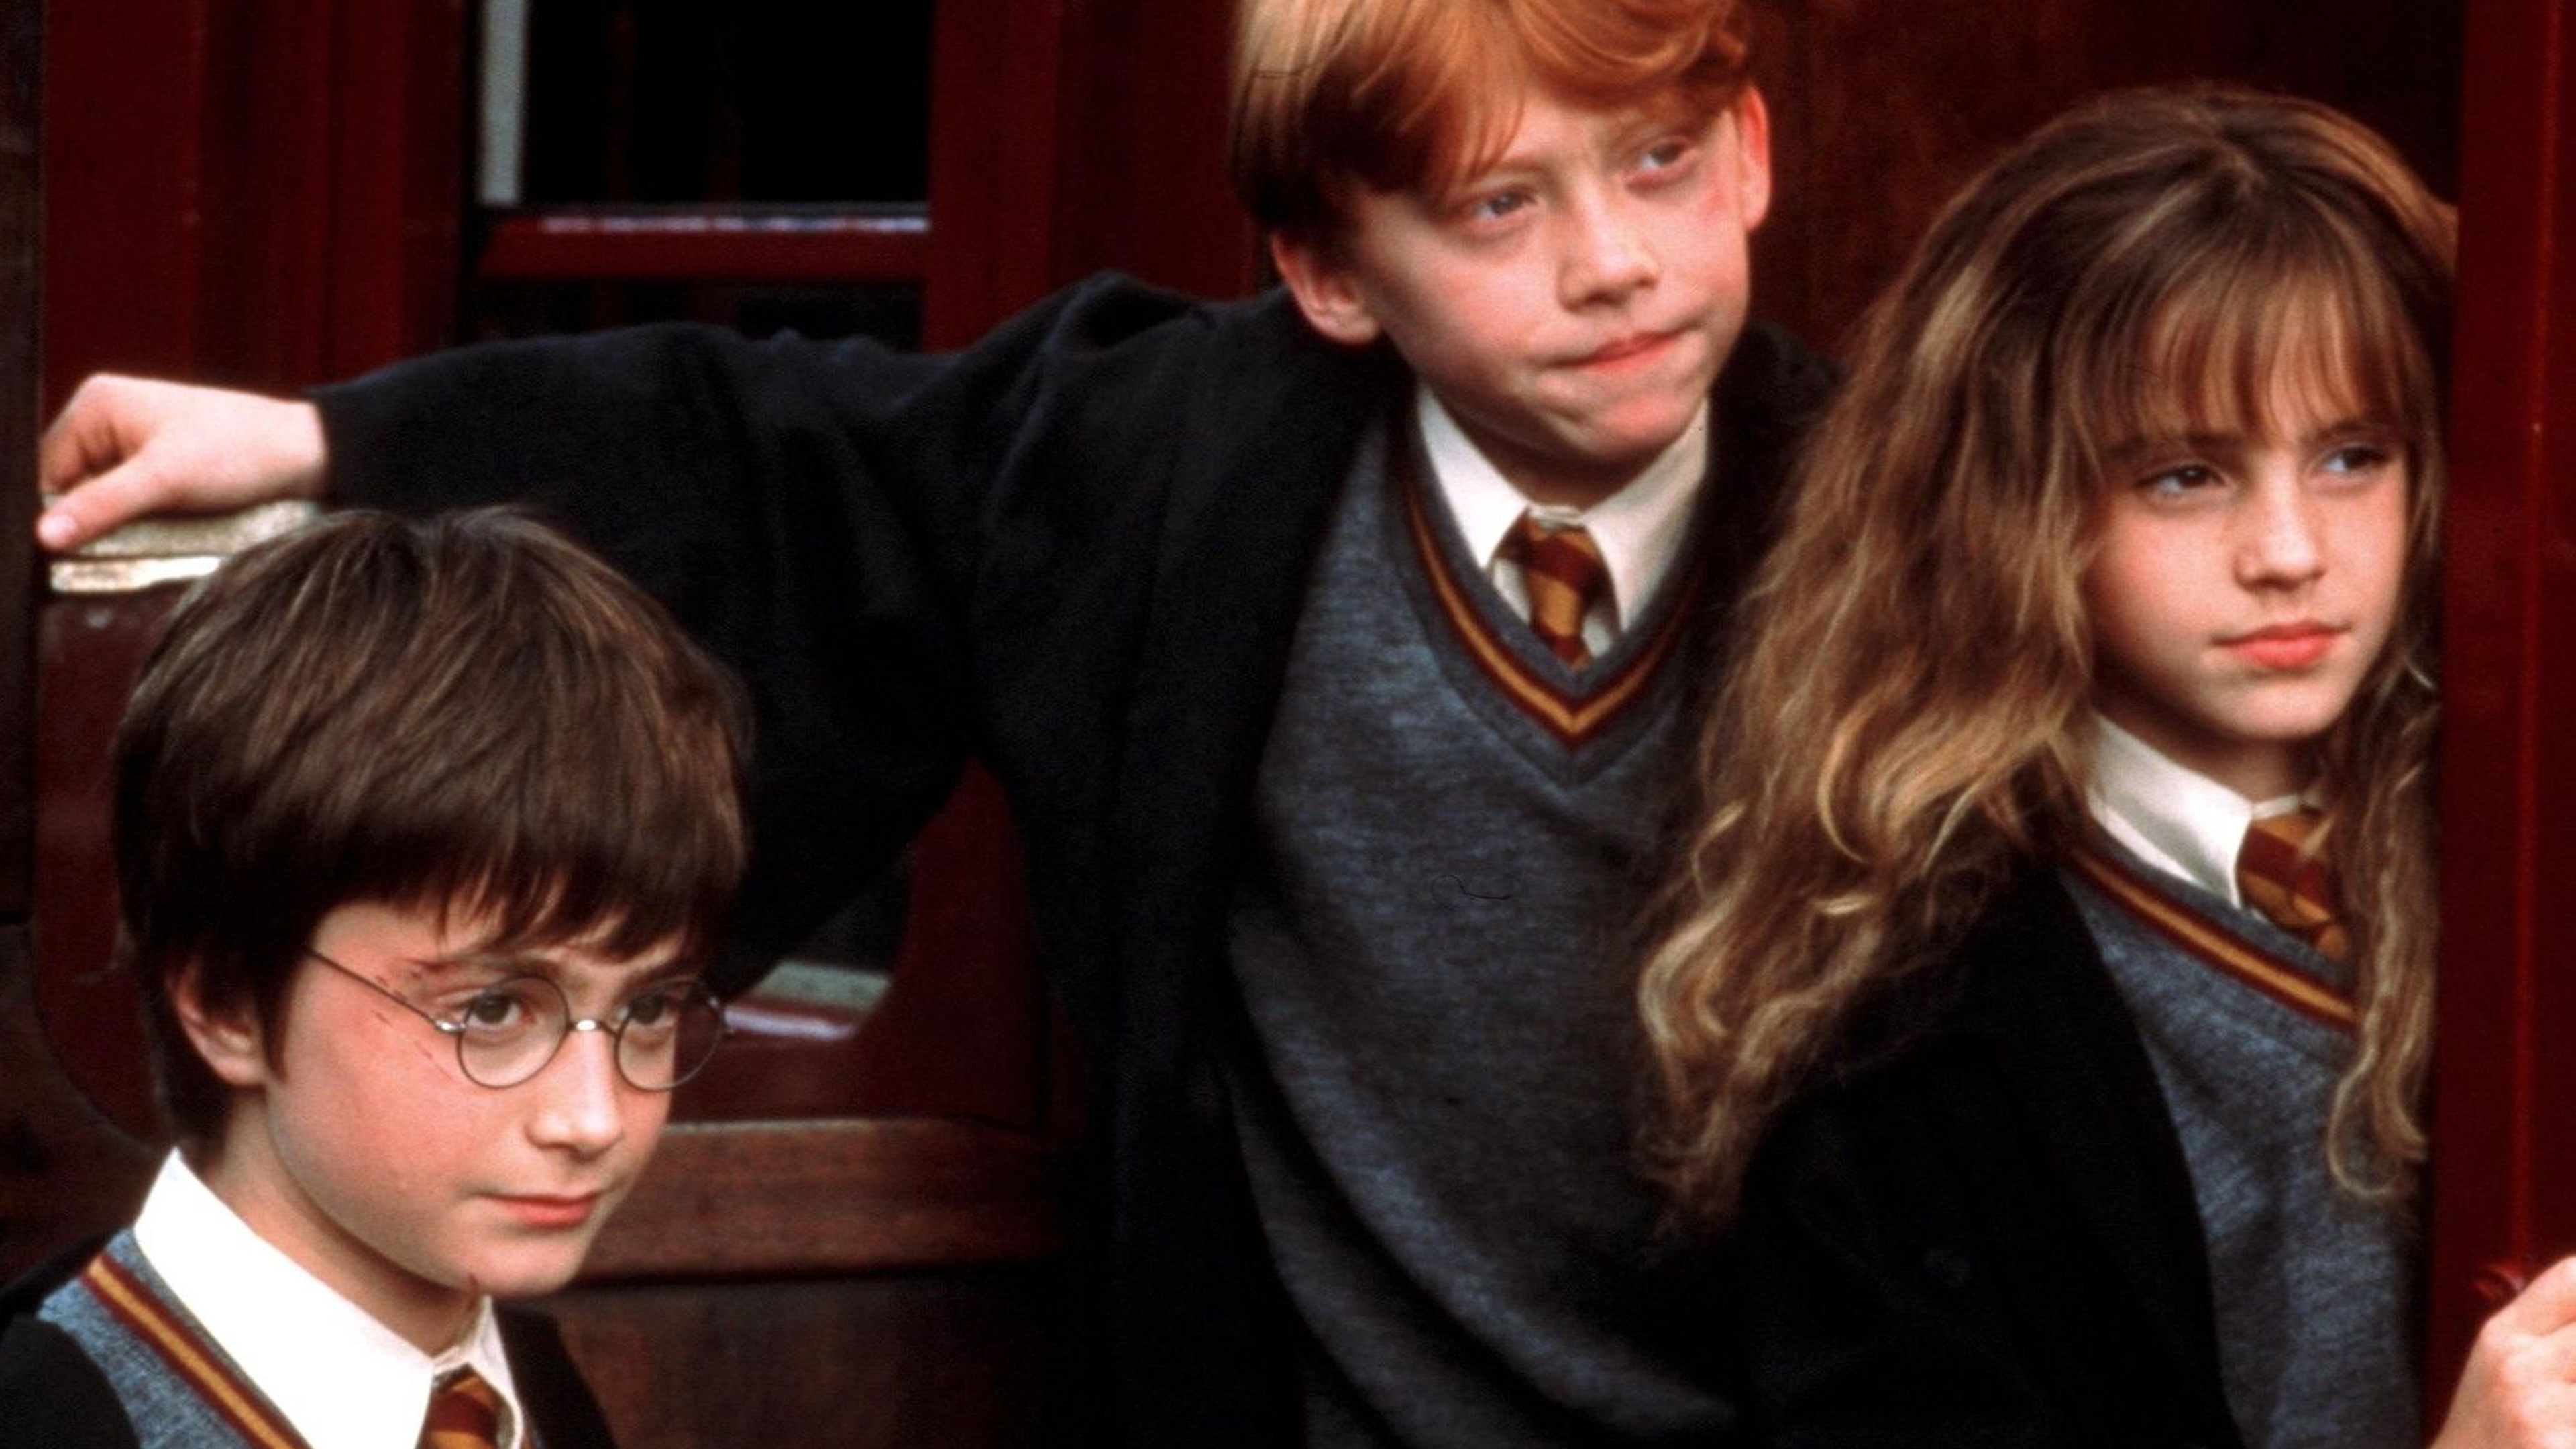 Harry Potter: A film adapted from The Cursed Child in discussion?